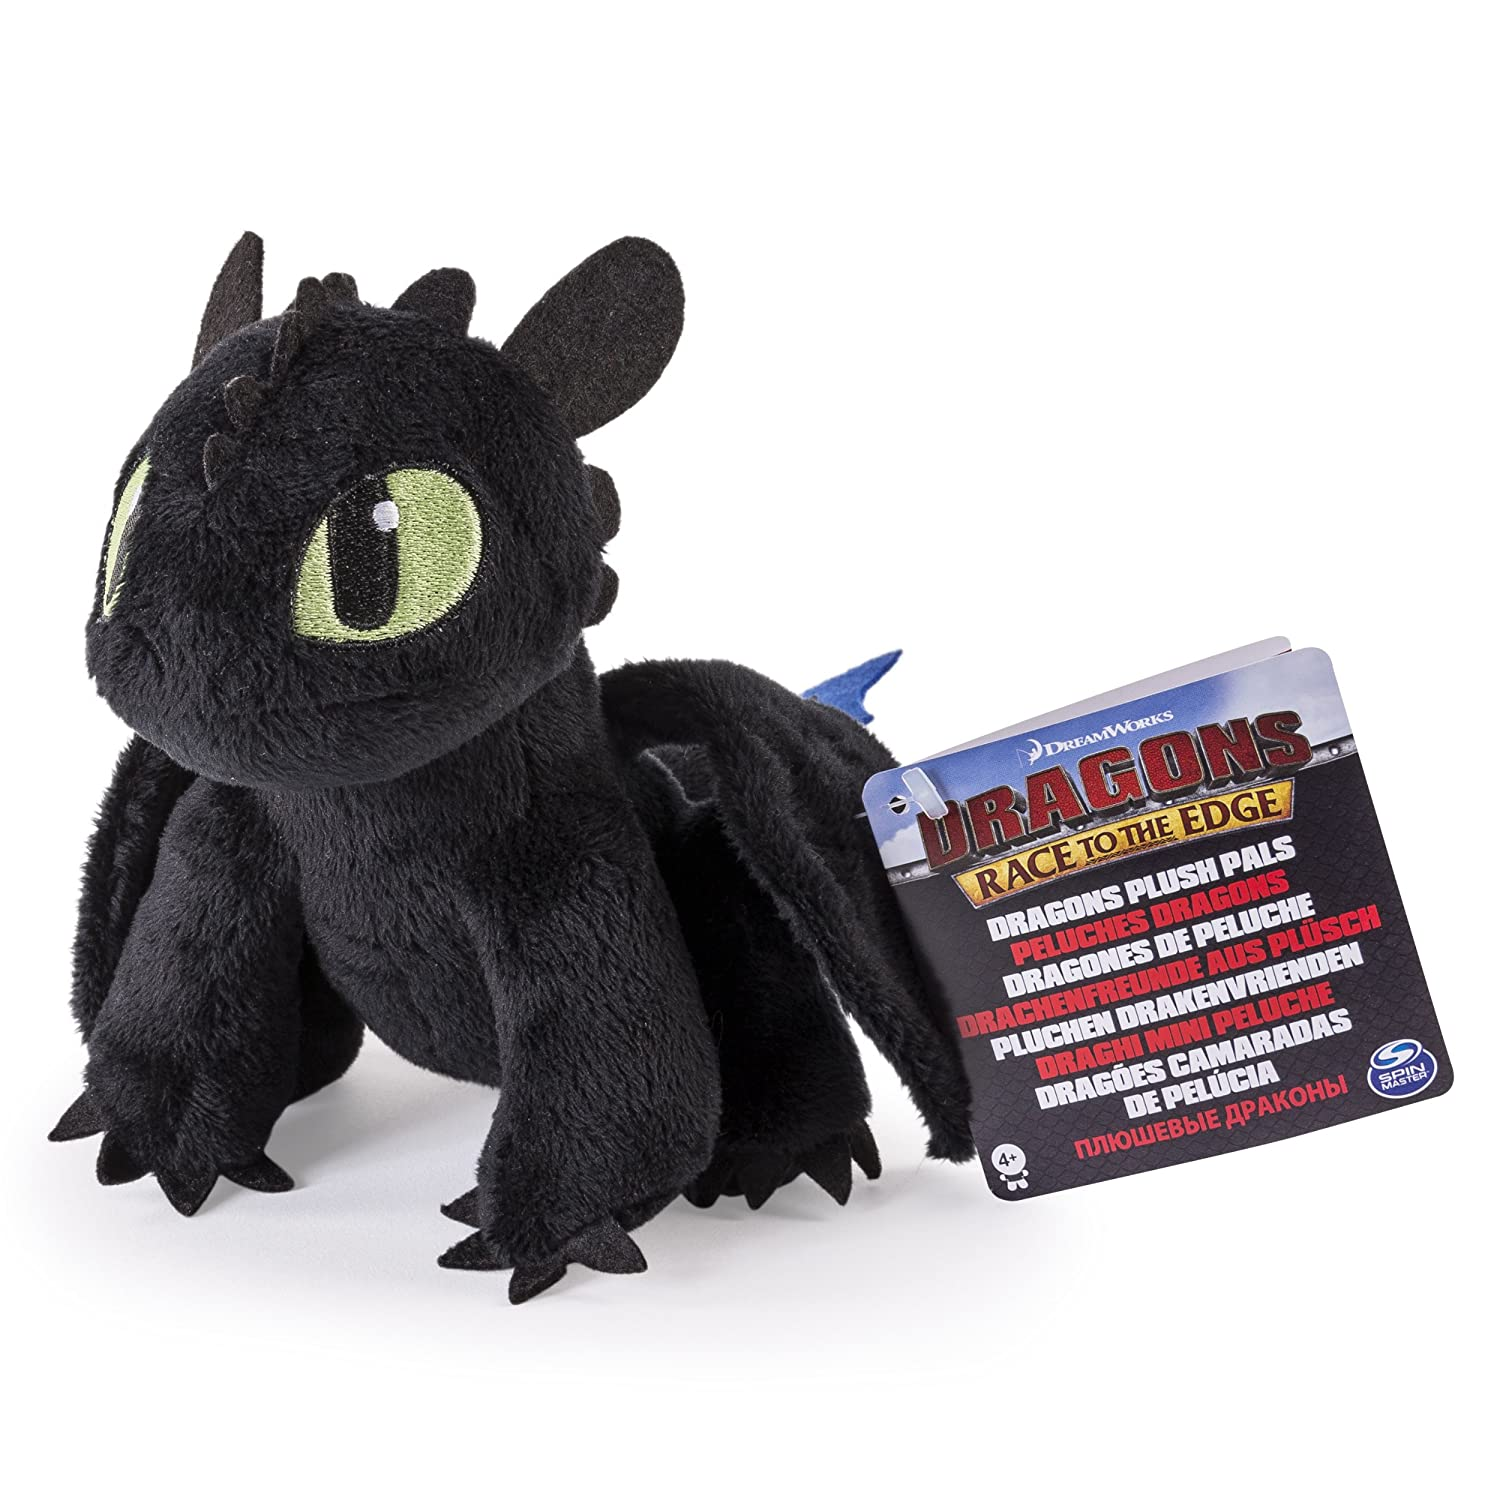 "Amazon.com: DreamWorks Dragons Race To The Edge – 8"" Premium Plush – Blue Tail Toothless: Toys & Games"